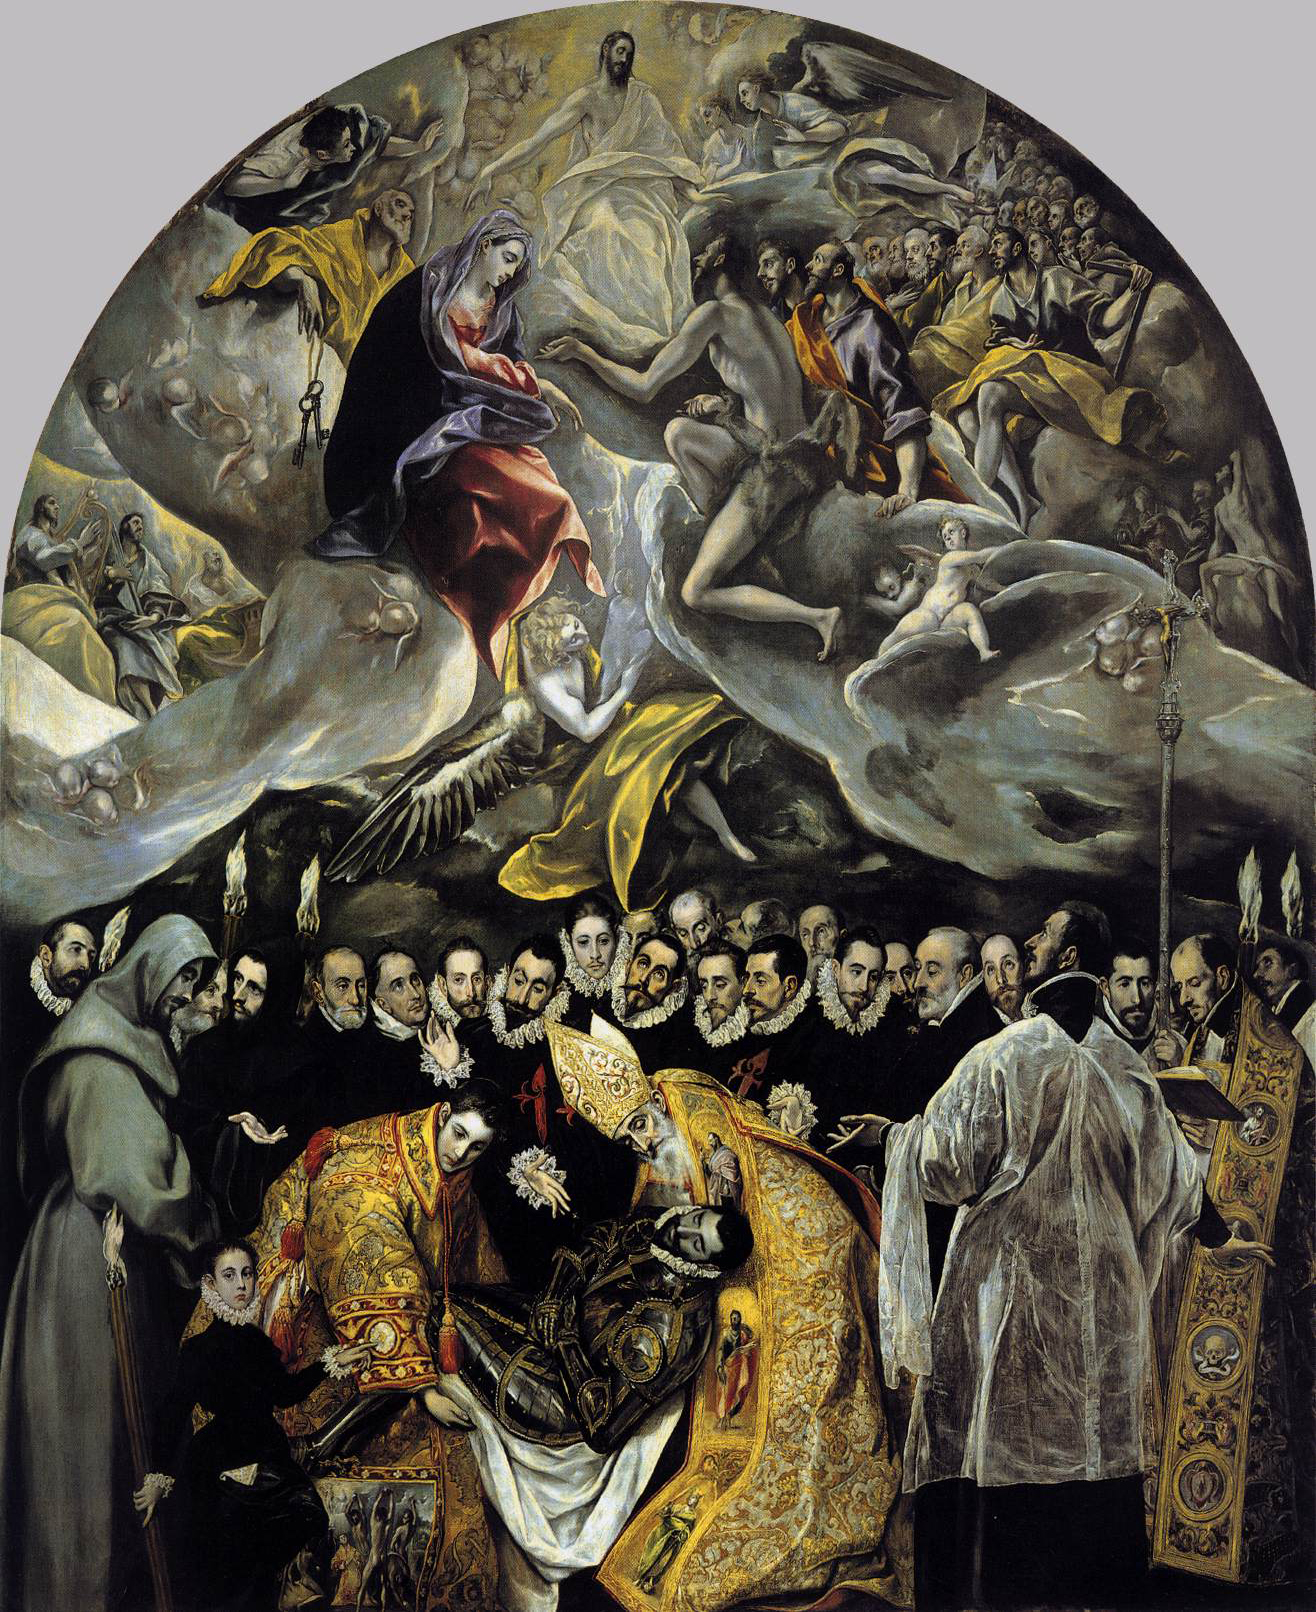 El Greco, 1586, oil on canvas, 180 in × 140 inches, Santo Tomé, Toledo, Spain